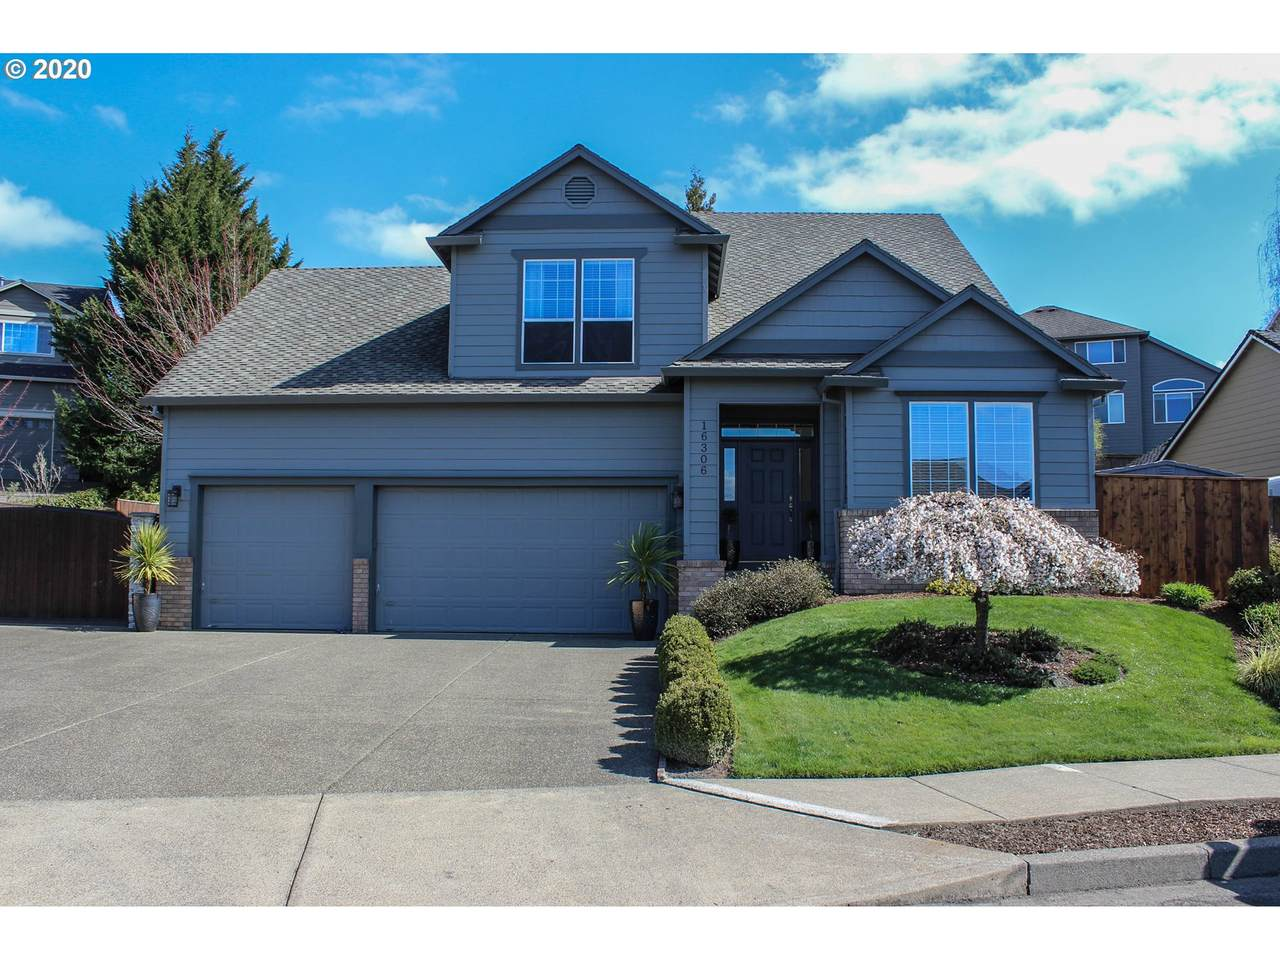 16306 Orchard View Ln - Photo 1